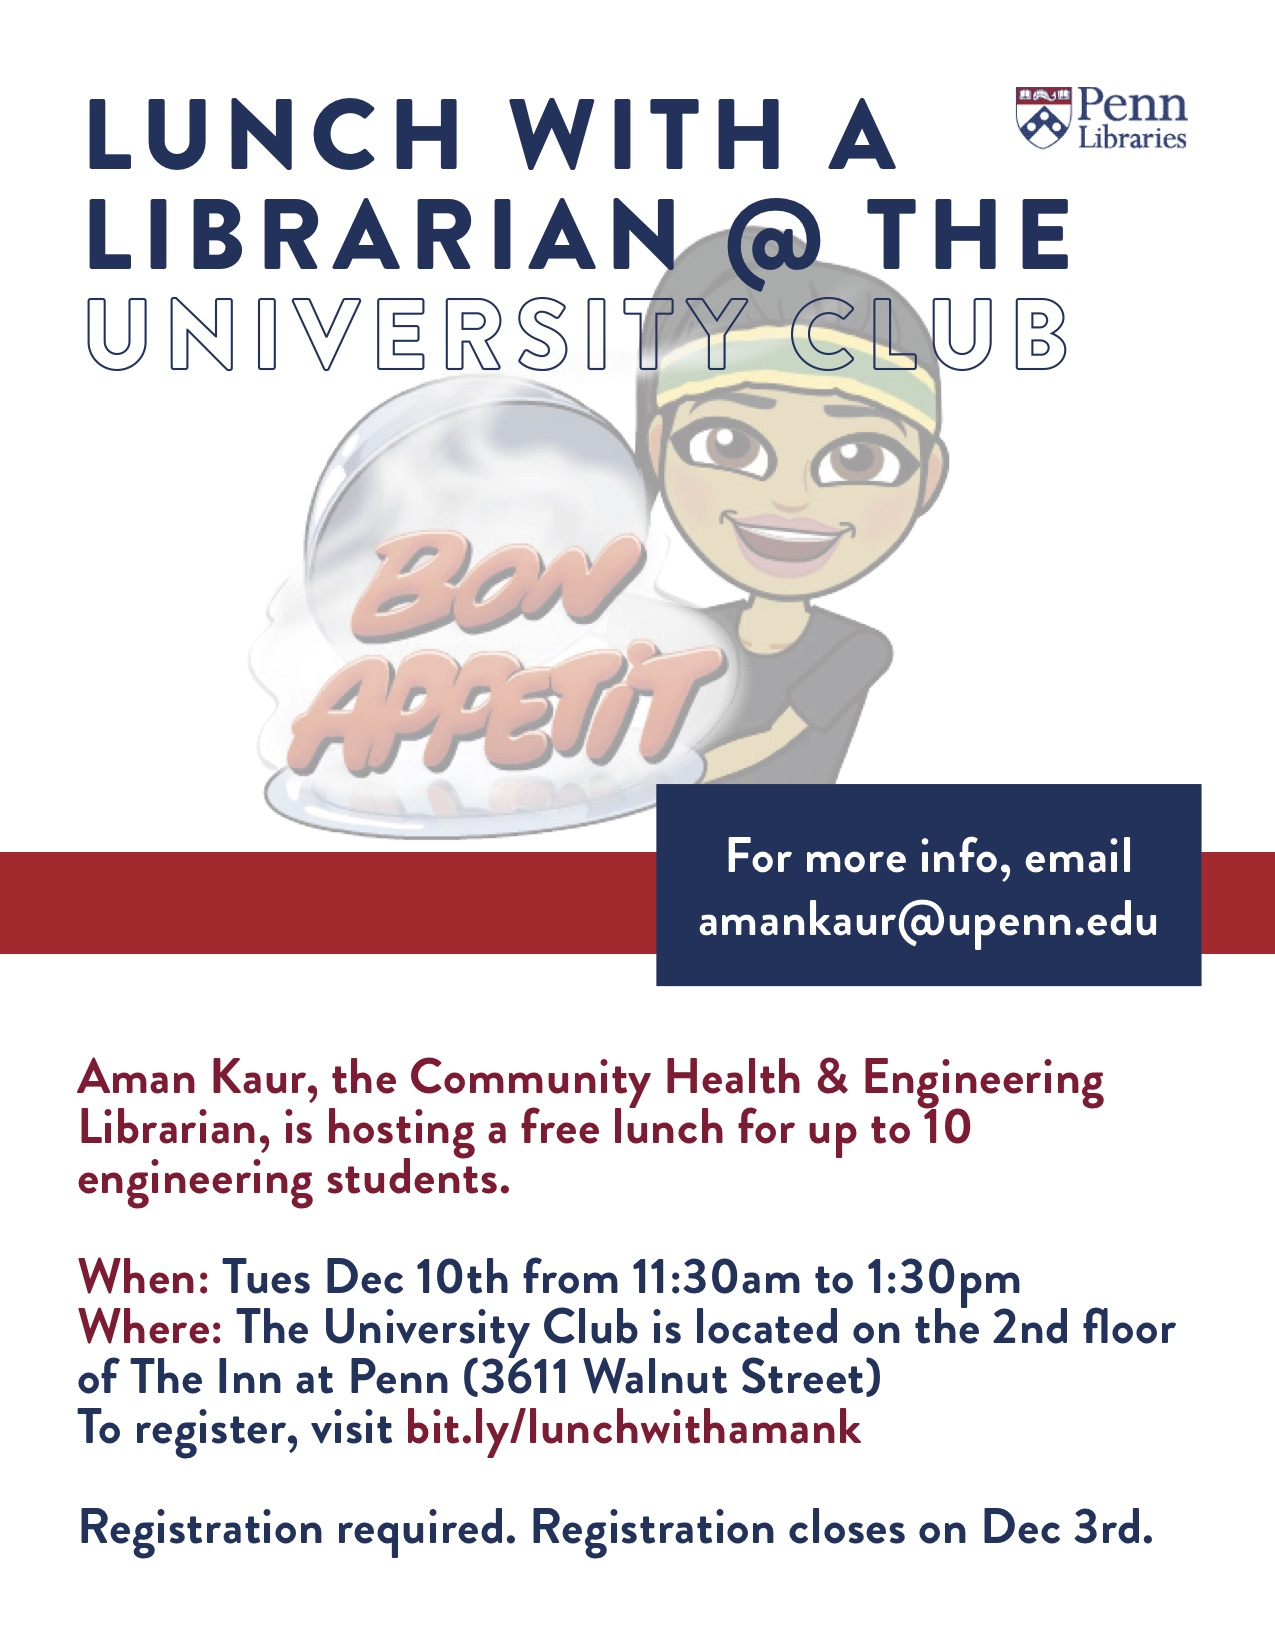 Lunch with a Librarian at the University Club on Dec 10th for engineering students. Click here to register.